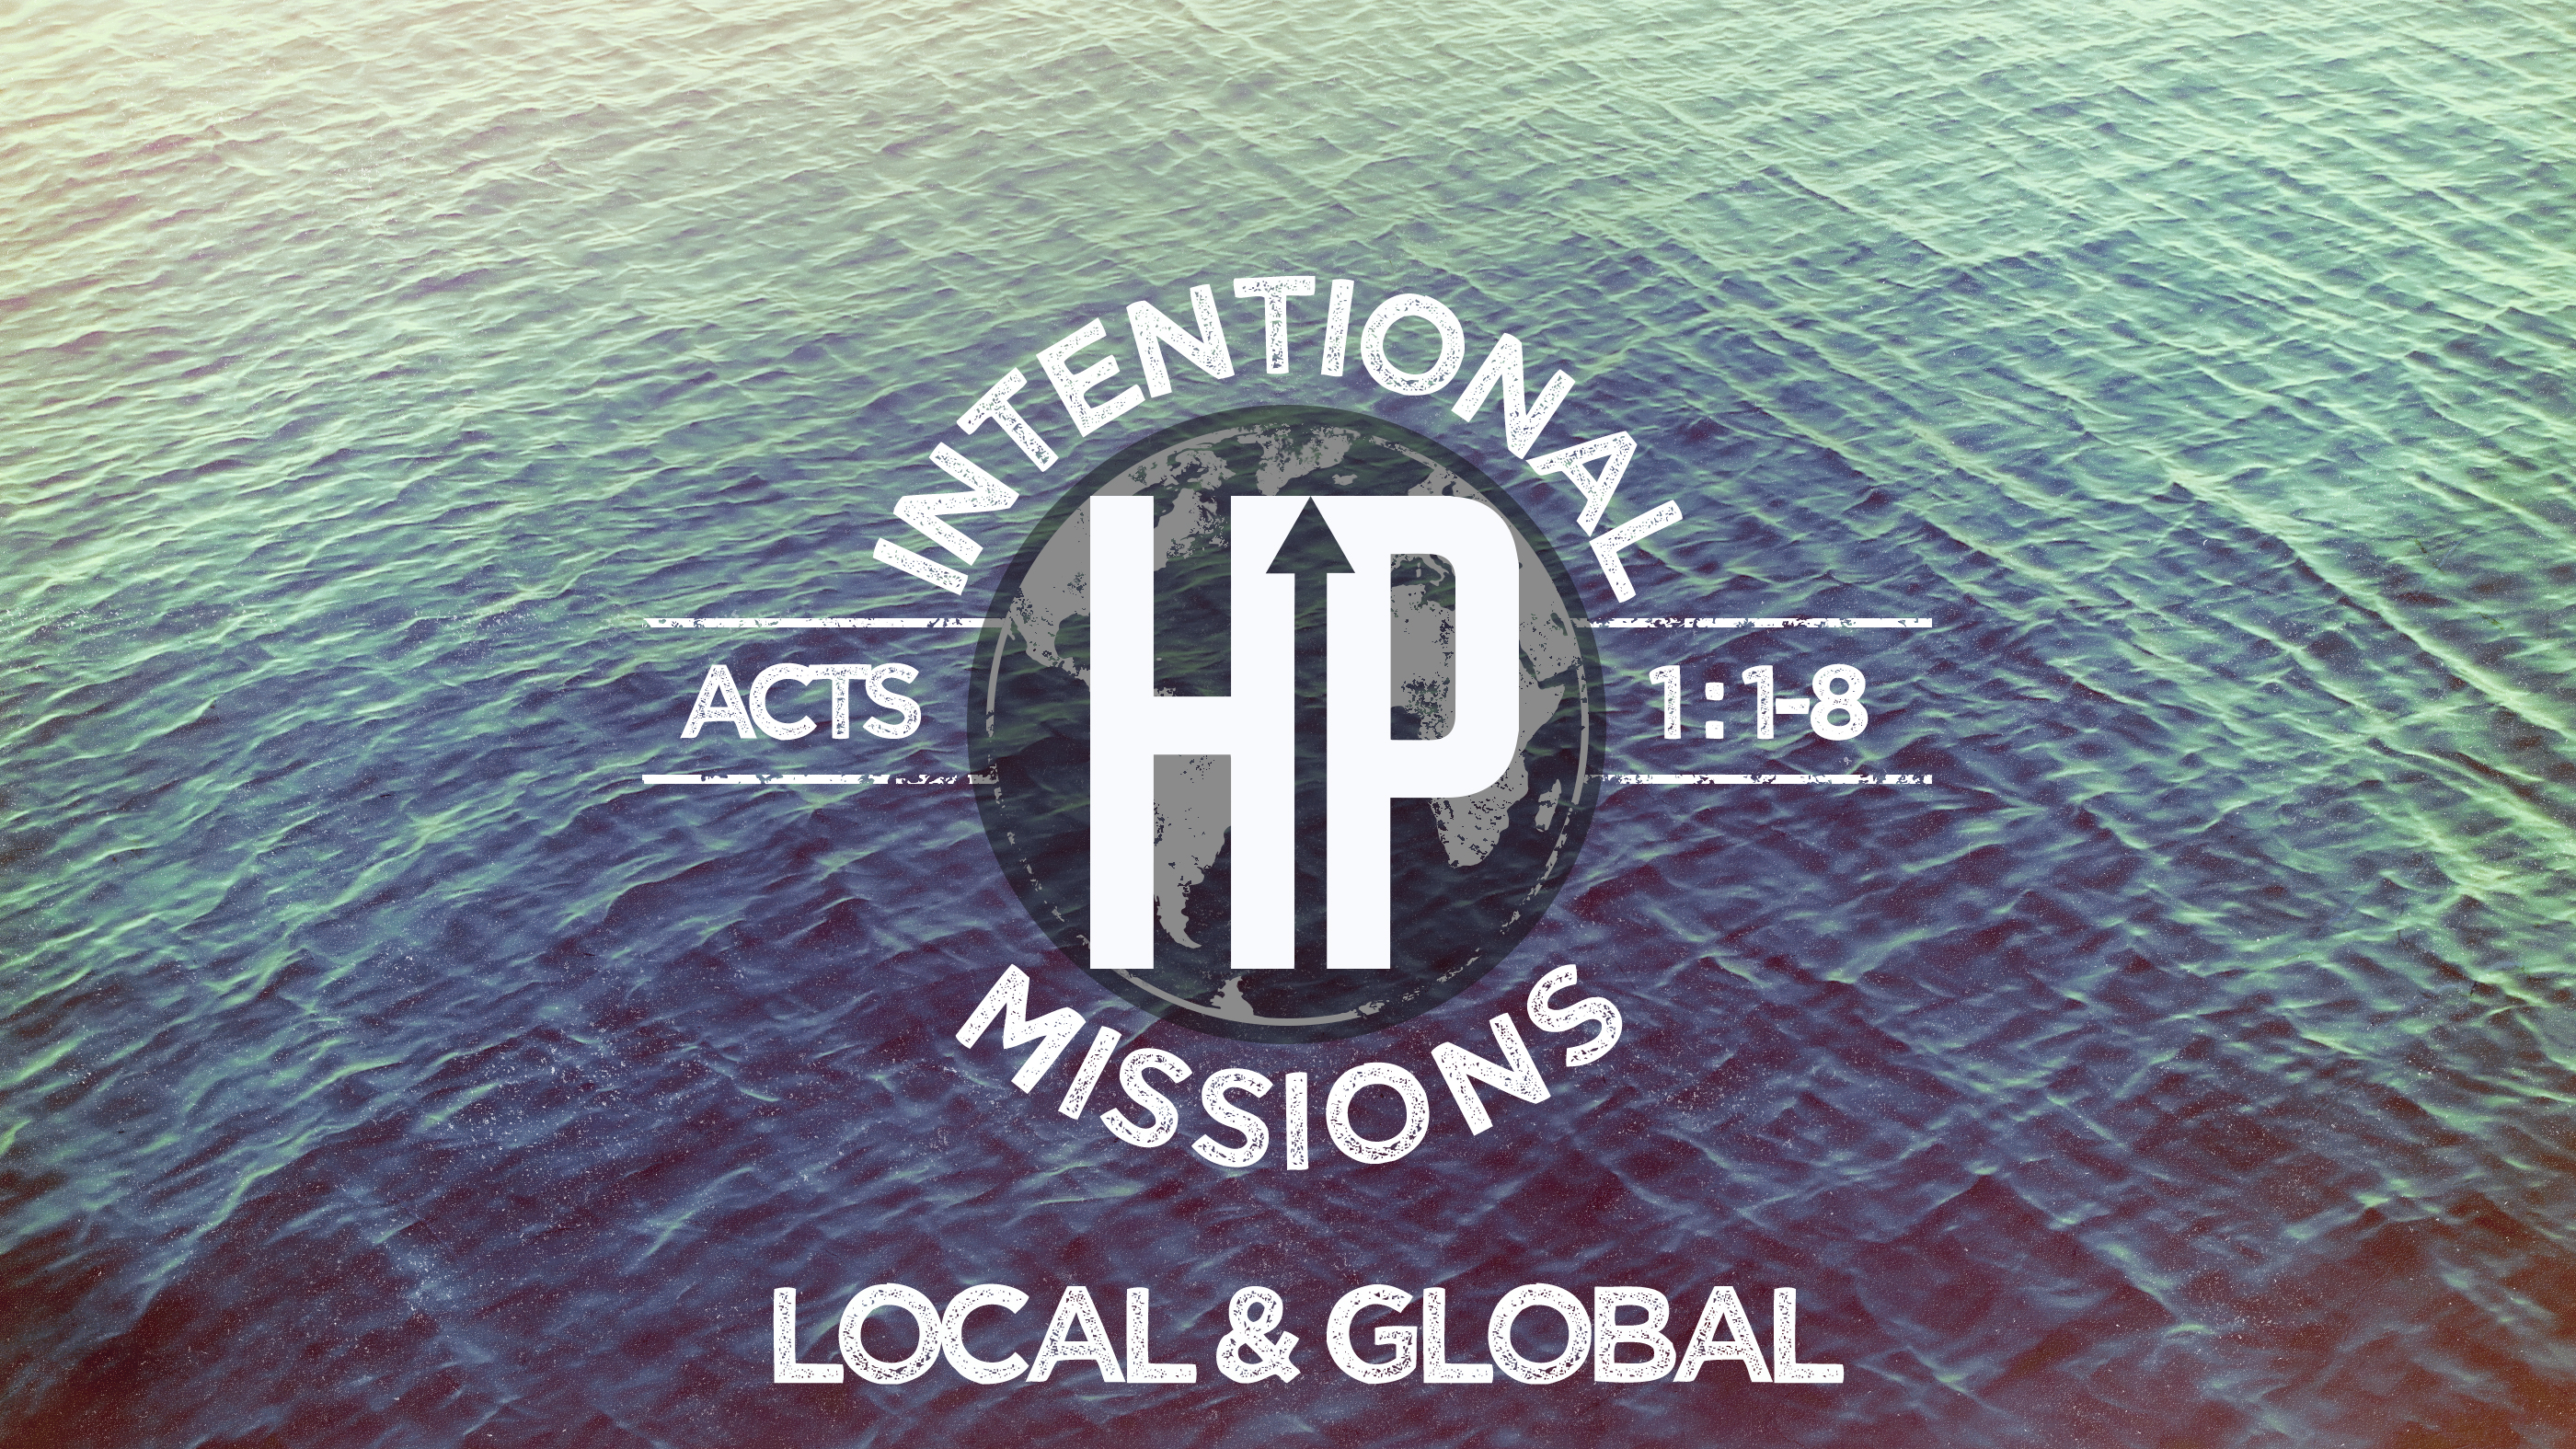 Intention mission weekend